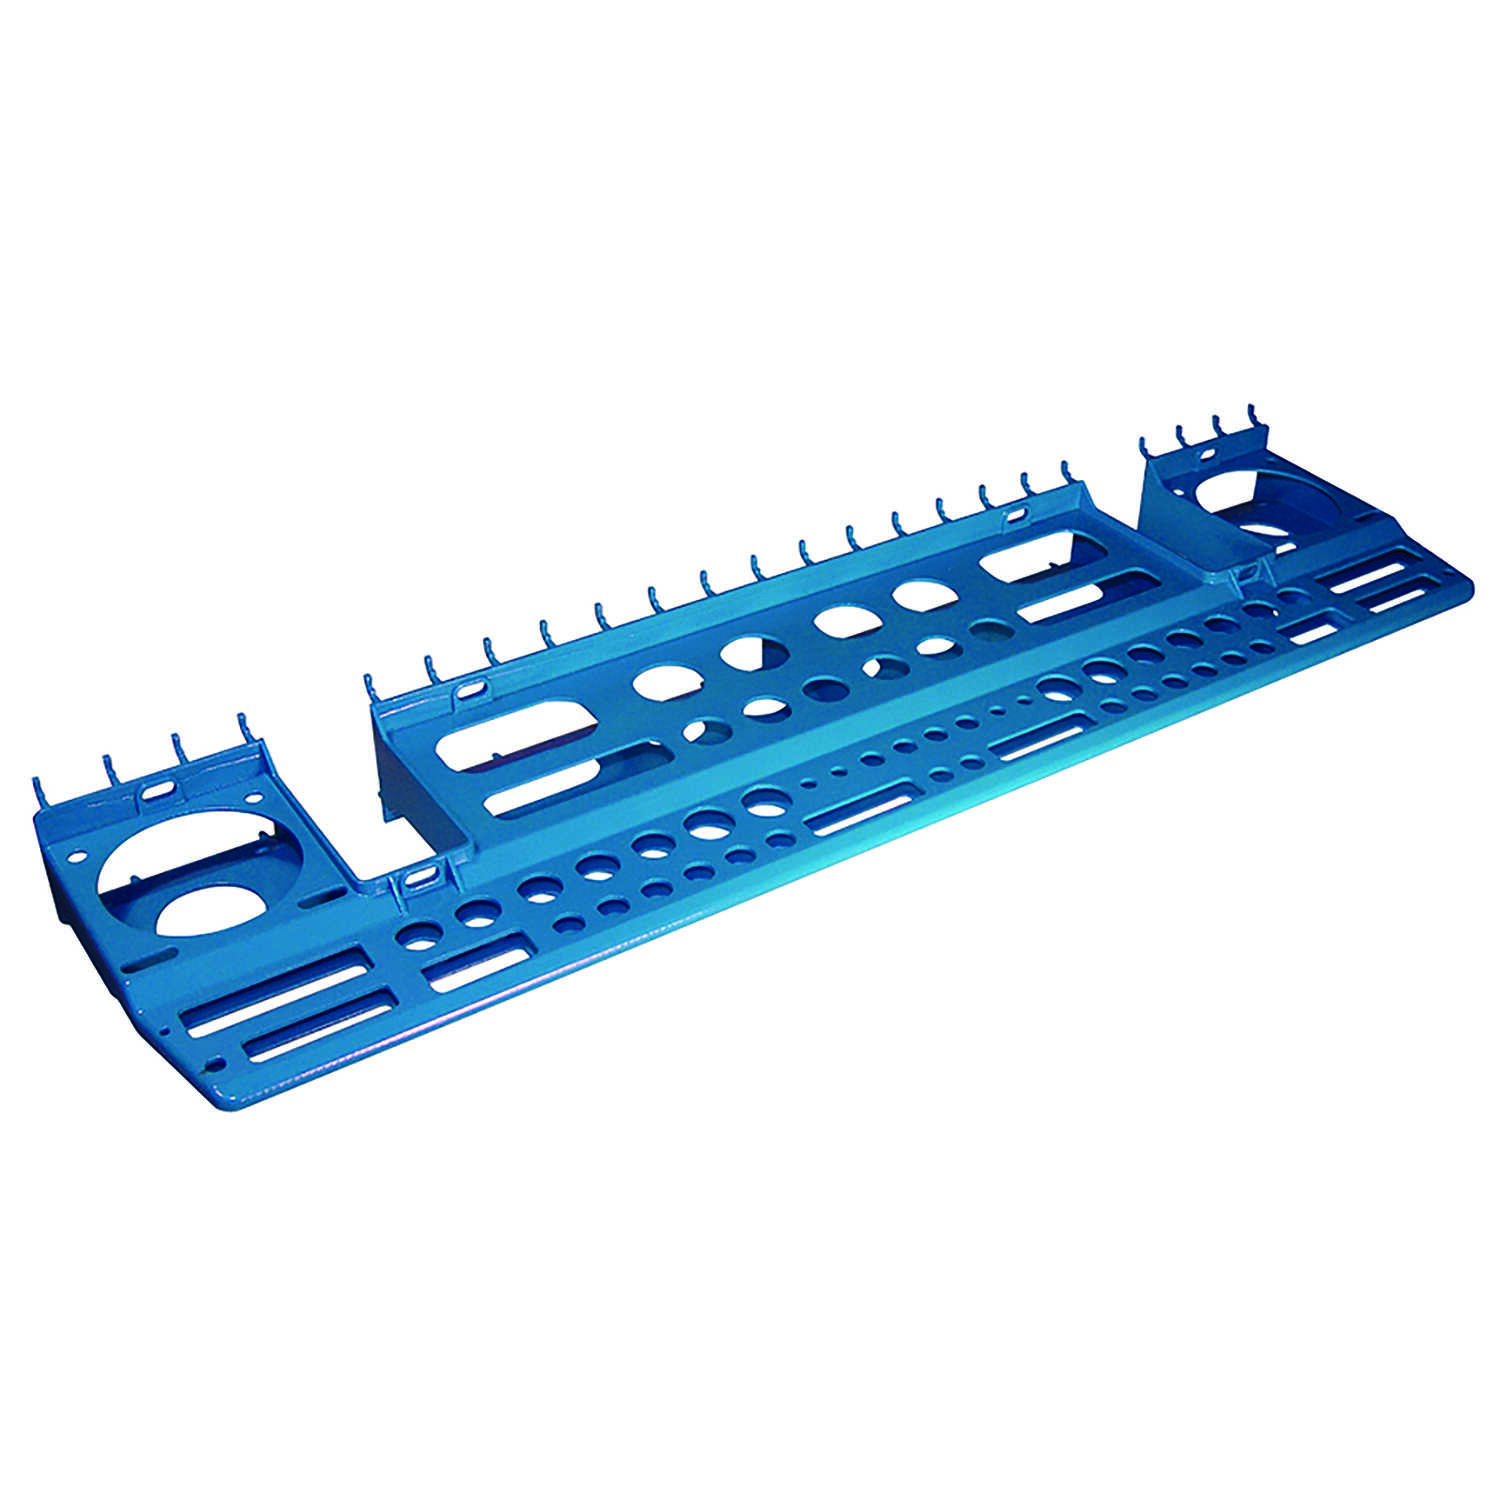 Crawford  Blue  Plastic  6 in. 3 in 1 Tool Holder  1